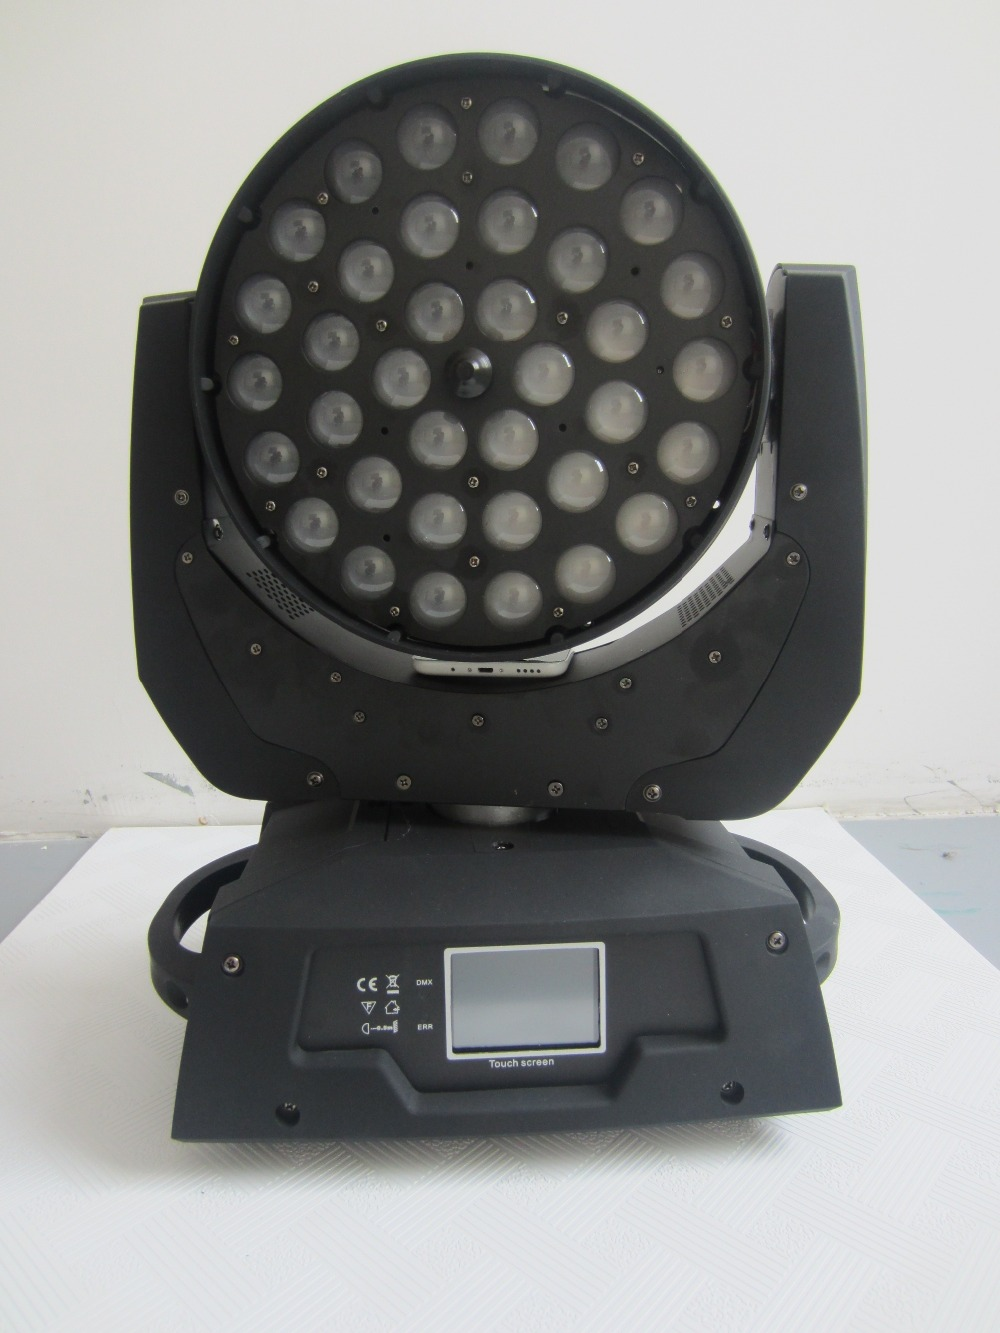 Guangzhou led light 36*18W 6 in 1 RGBWY UV led moving head zoom wash stage light touch screen for dj lights